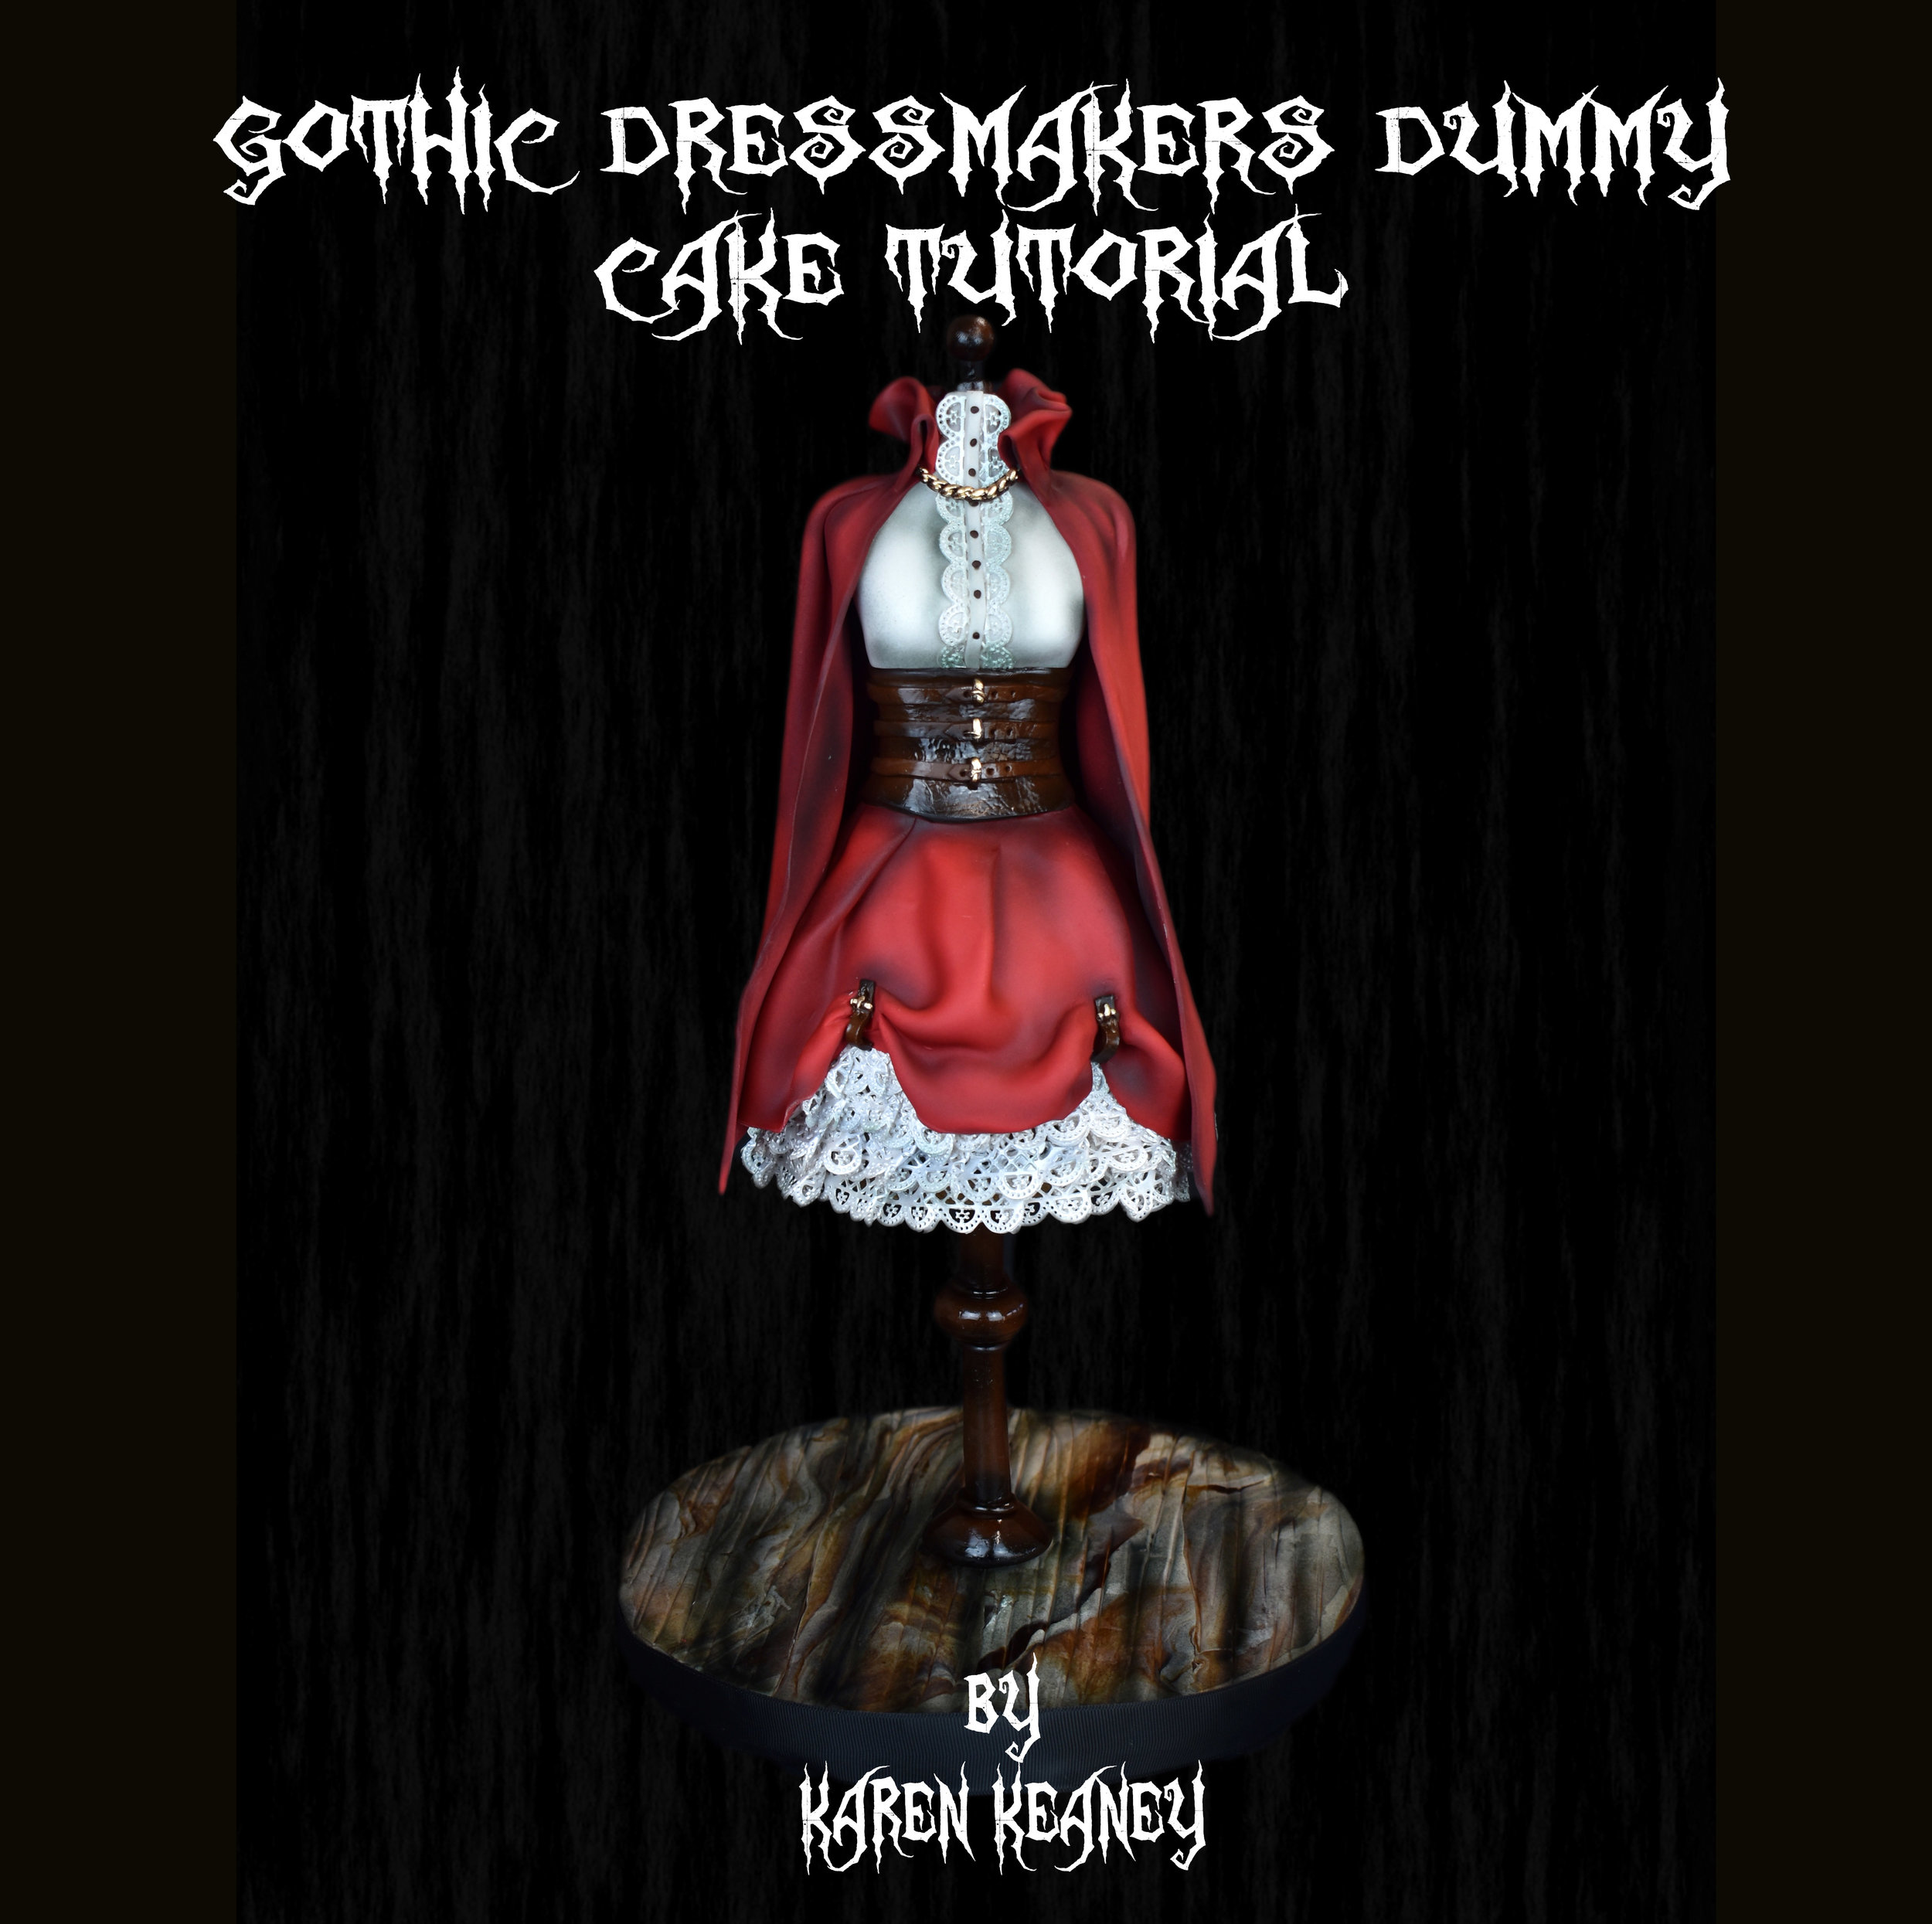 gothiC DRESSMAKERS POSTER WEB.jpg